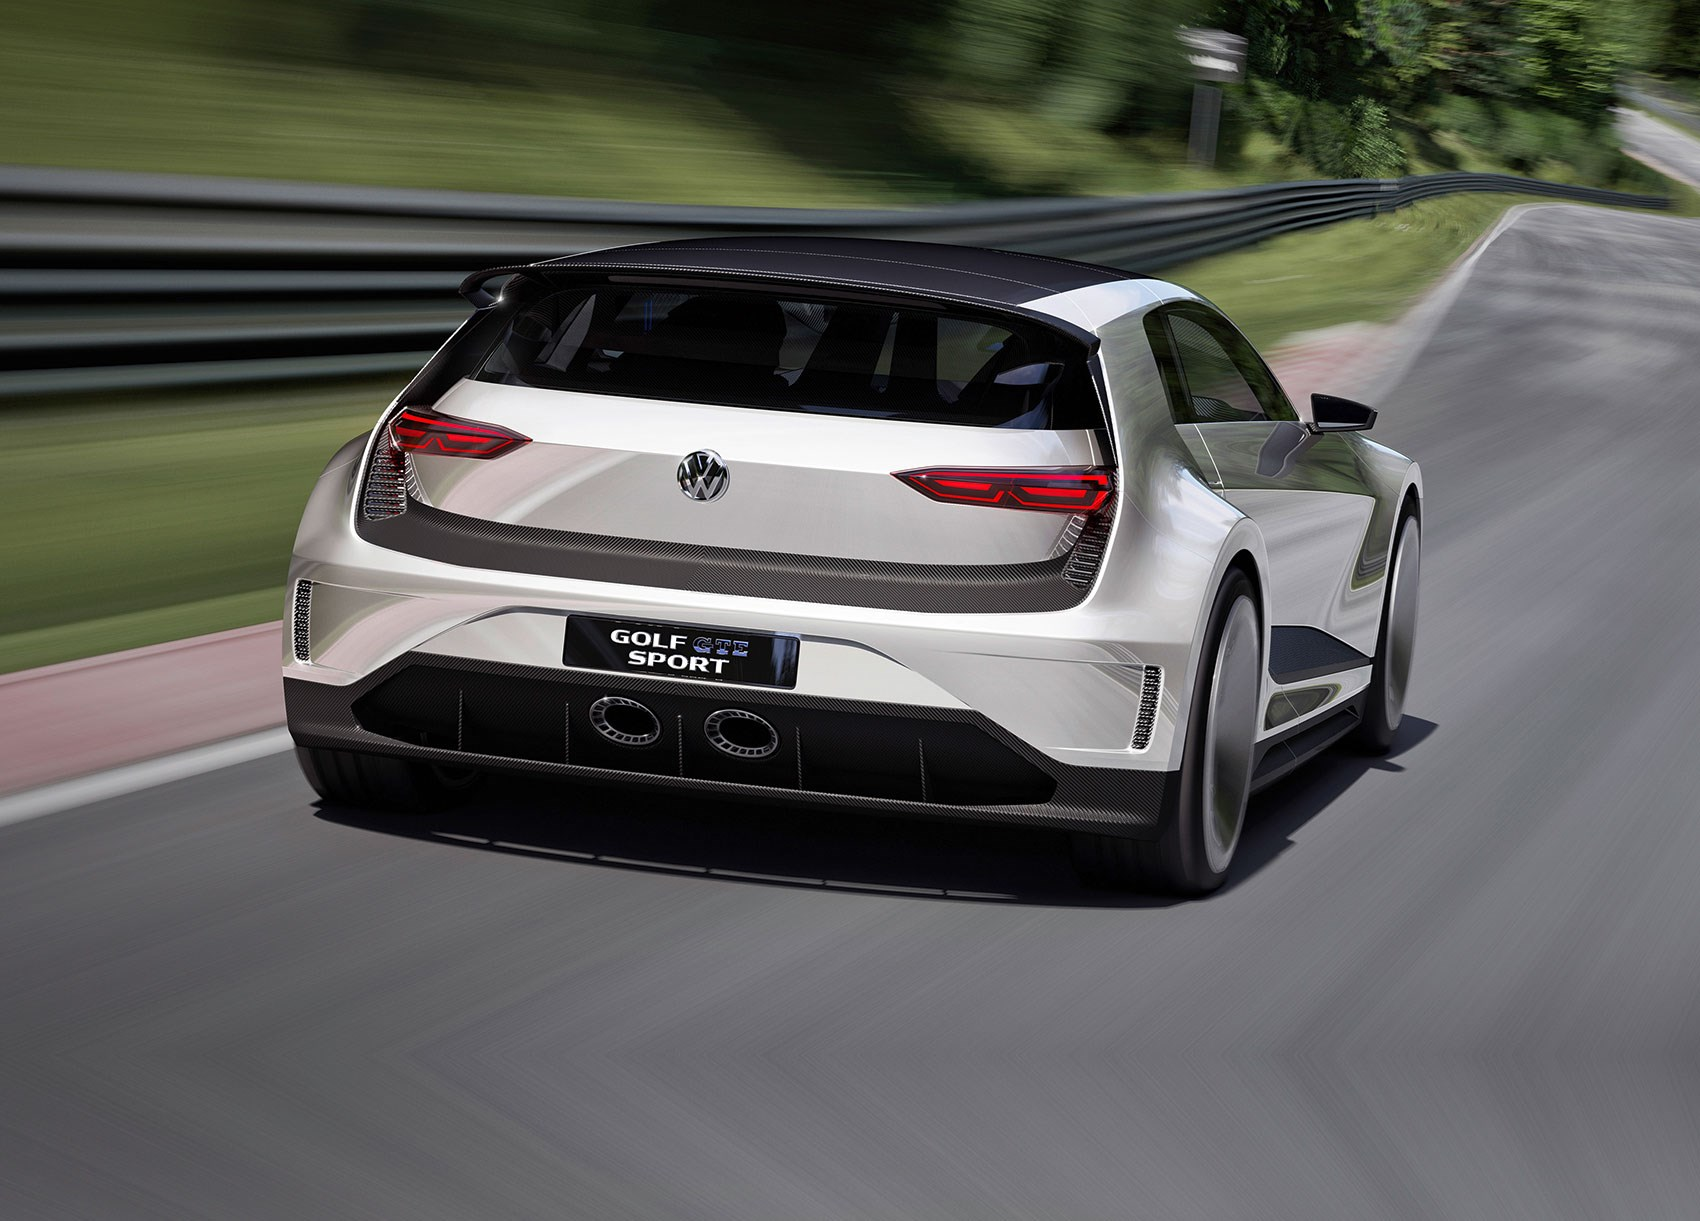 Vw Golf Gte Sport The Outrageous Carbon Bodied 400bhp